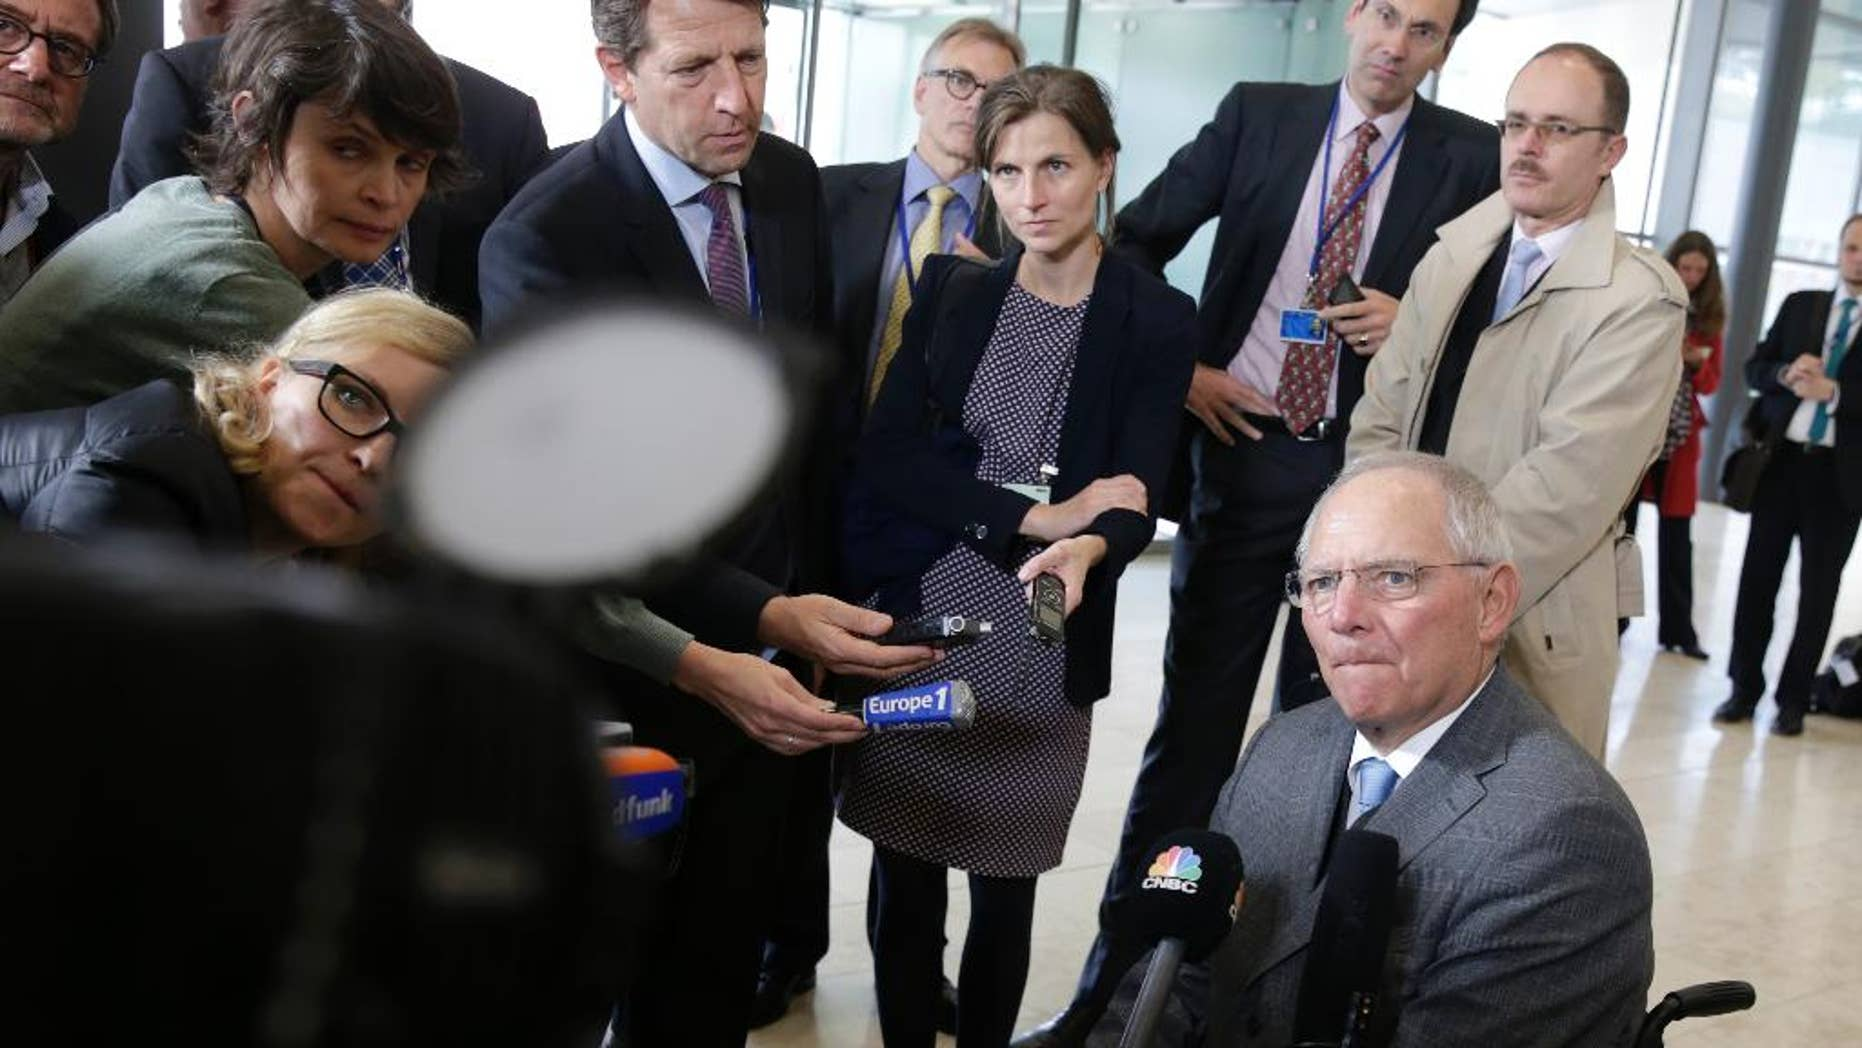 German Finance Minister Wolfgang Schaeuble talks with the media prior to the Eurogroup finance ministers meeting in Luxembourg, Monday Oct. 13, 2014. Finance ministers from the nations sharing the euro currency meet ahead of Tuesday's EU finance ministers council. (AP Photo/Yves Logghe)